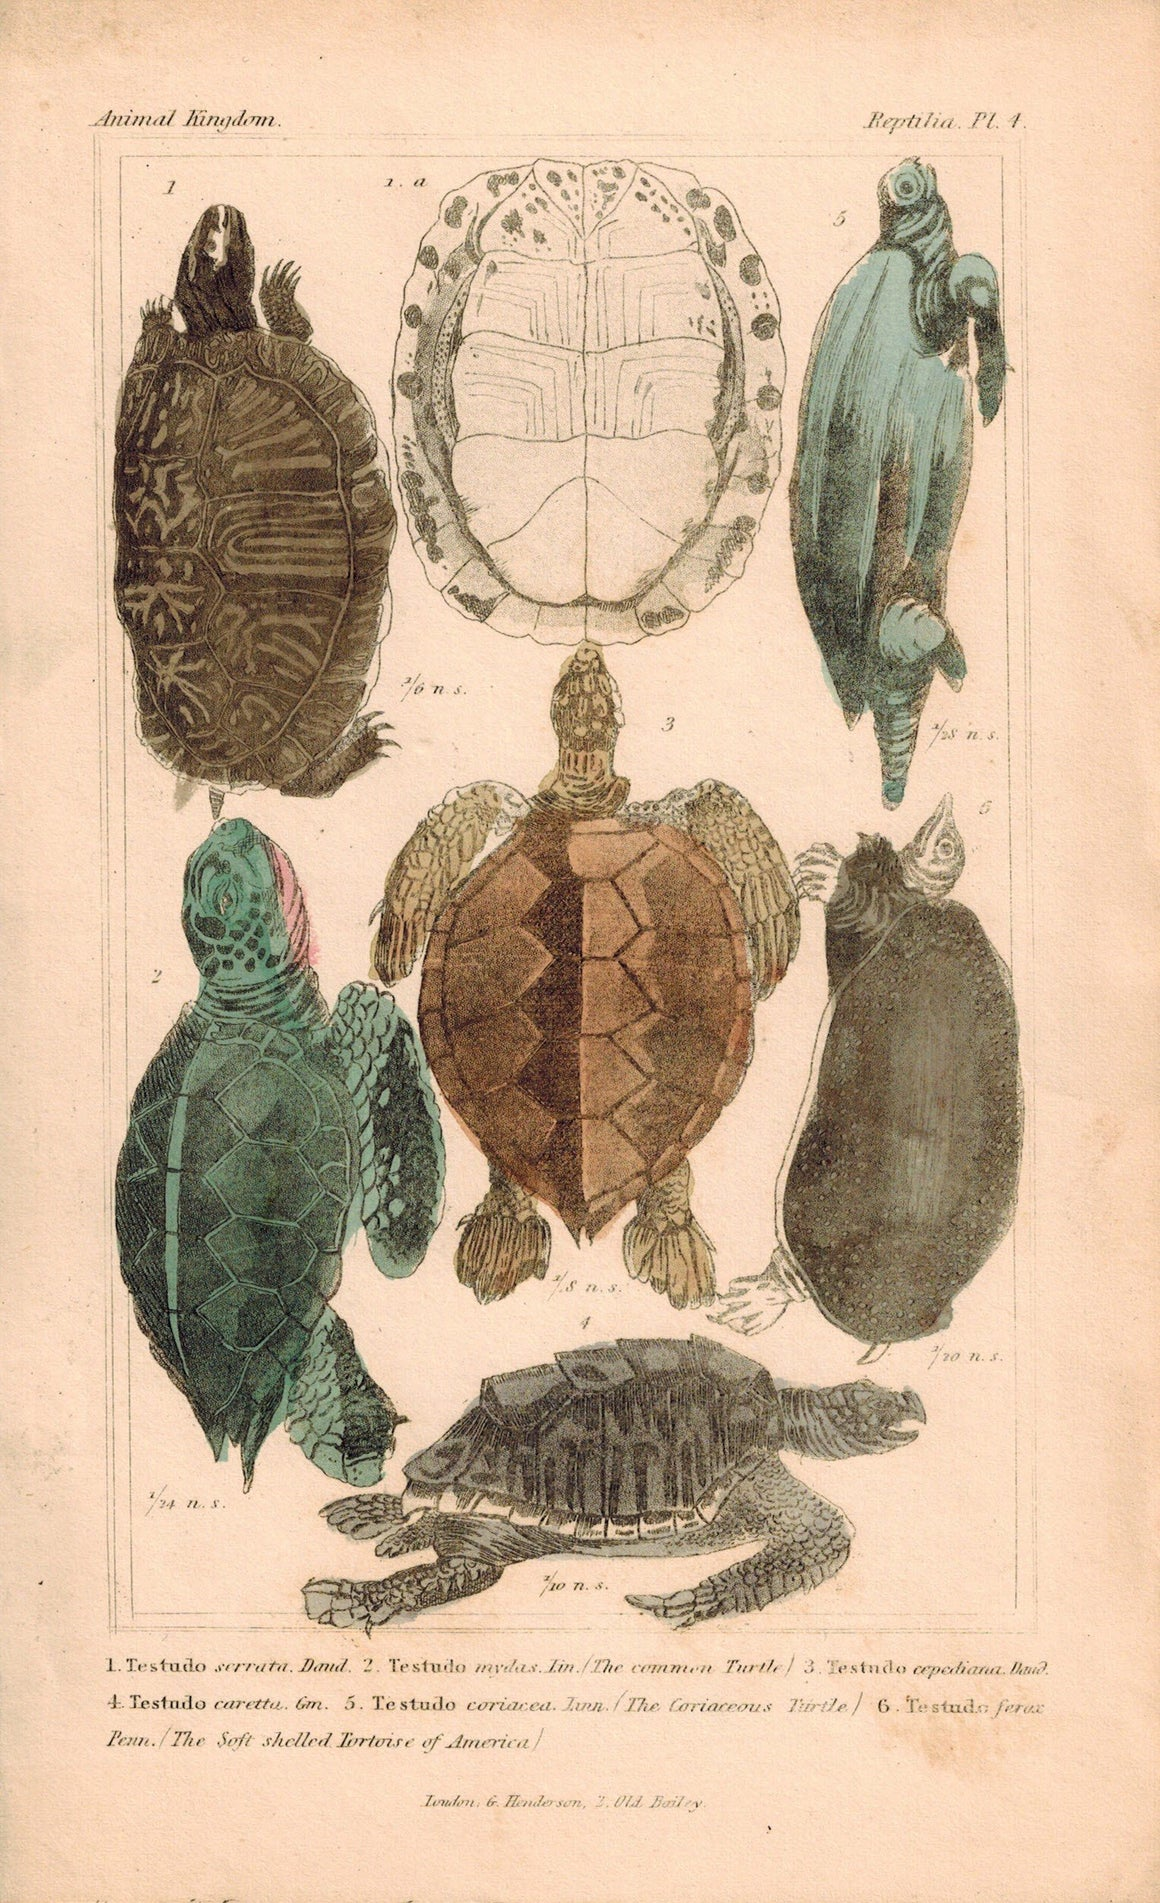 Tortoise and Turtles 1834 Engraved Cuvier Reptile Print Plate 4